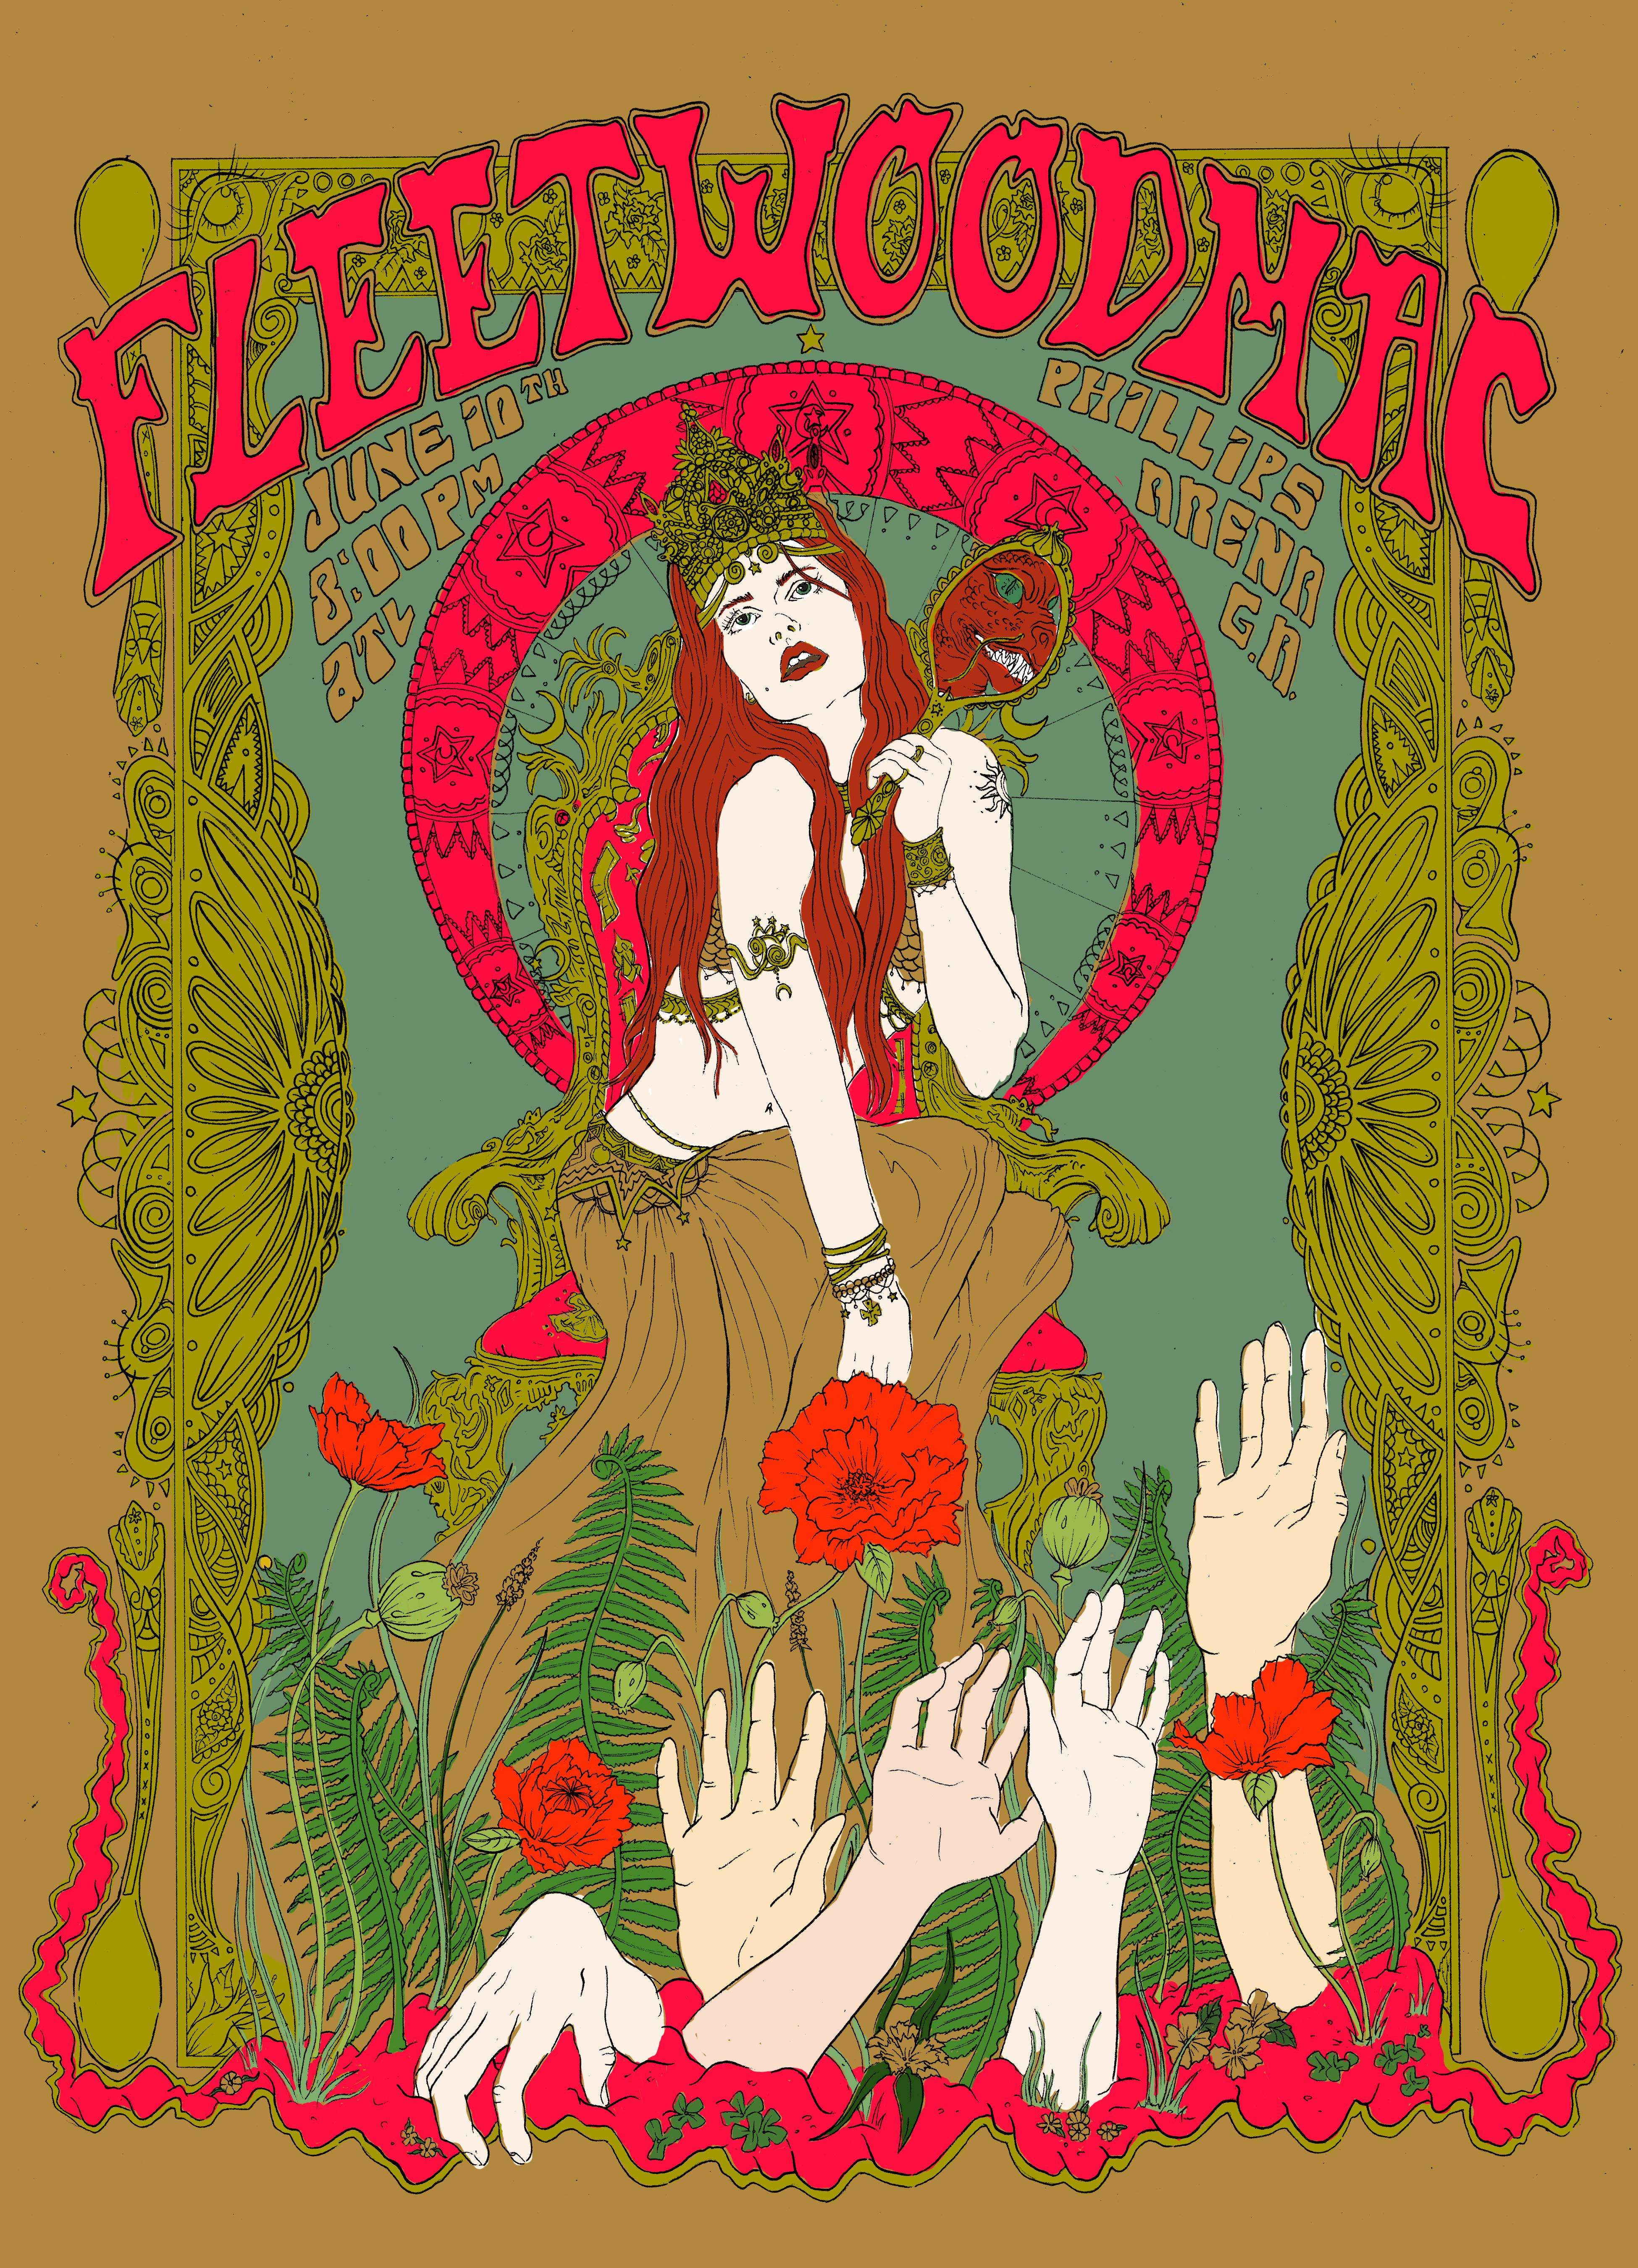 Fleetwood Mac Vintage Music Posters Psychedelic Poster Concert Posters